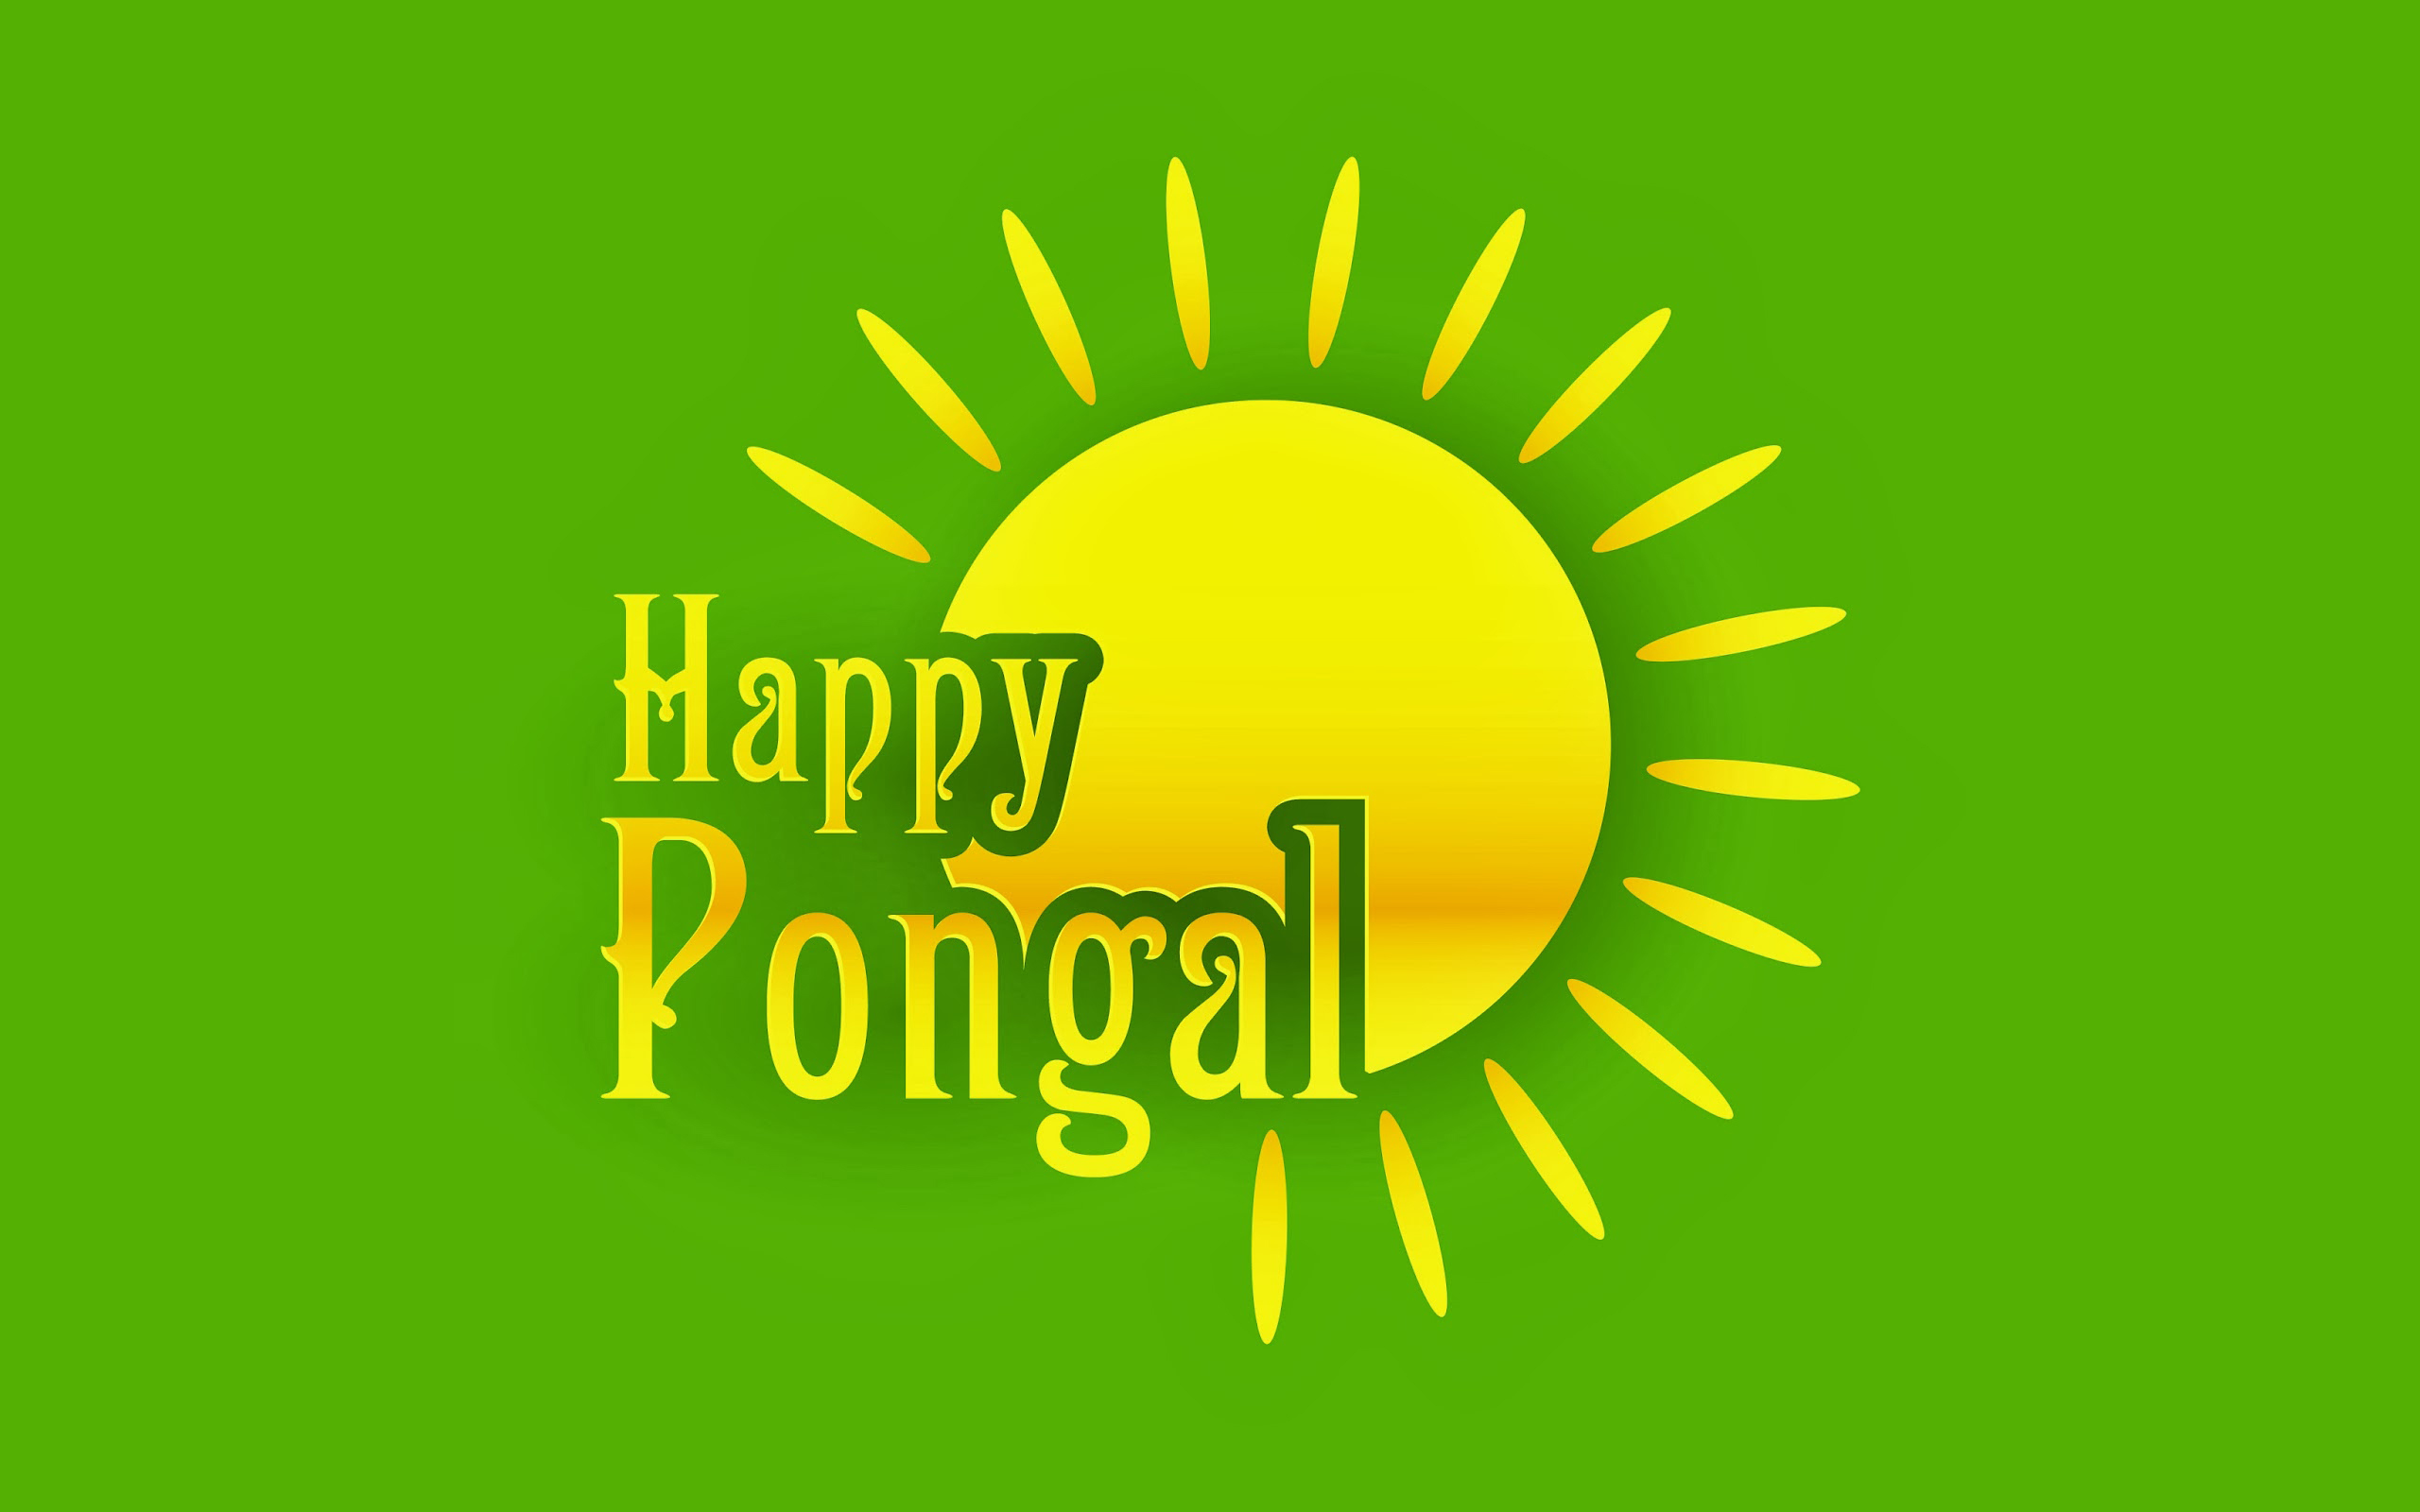 Happy Pongal 2018 Image